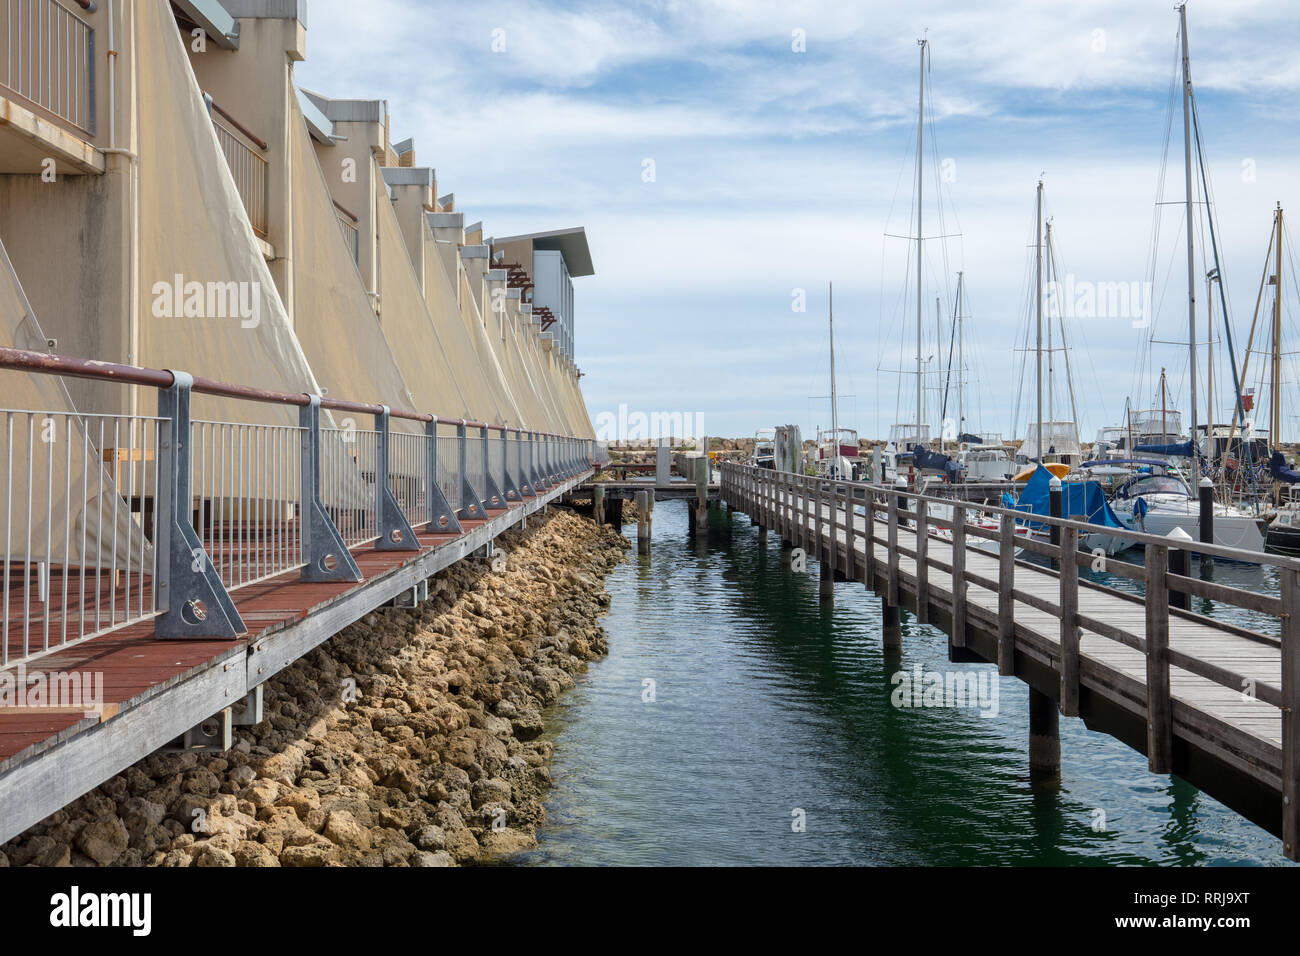 Walkways from the holiday apartments to the small boat harbour nearby with easy access, in the outskirts of Fremantle, Perth, Western Australia. - Stock Image